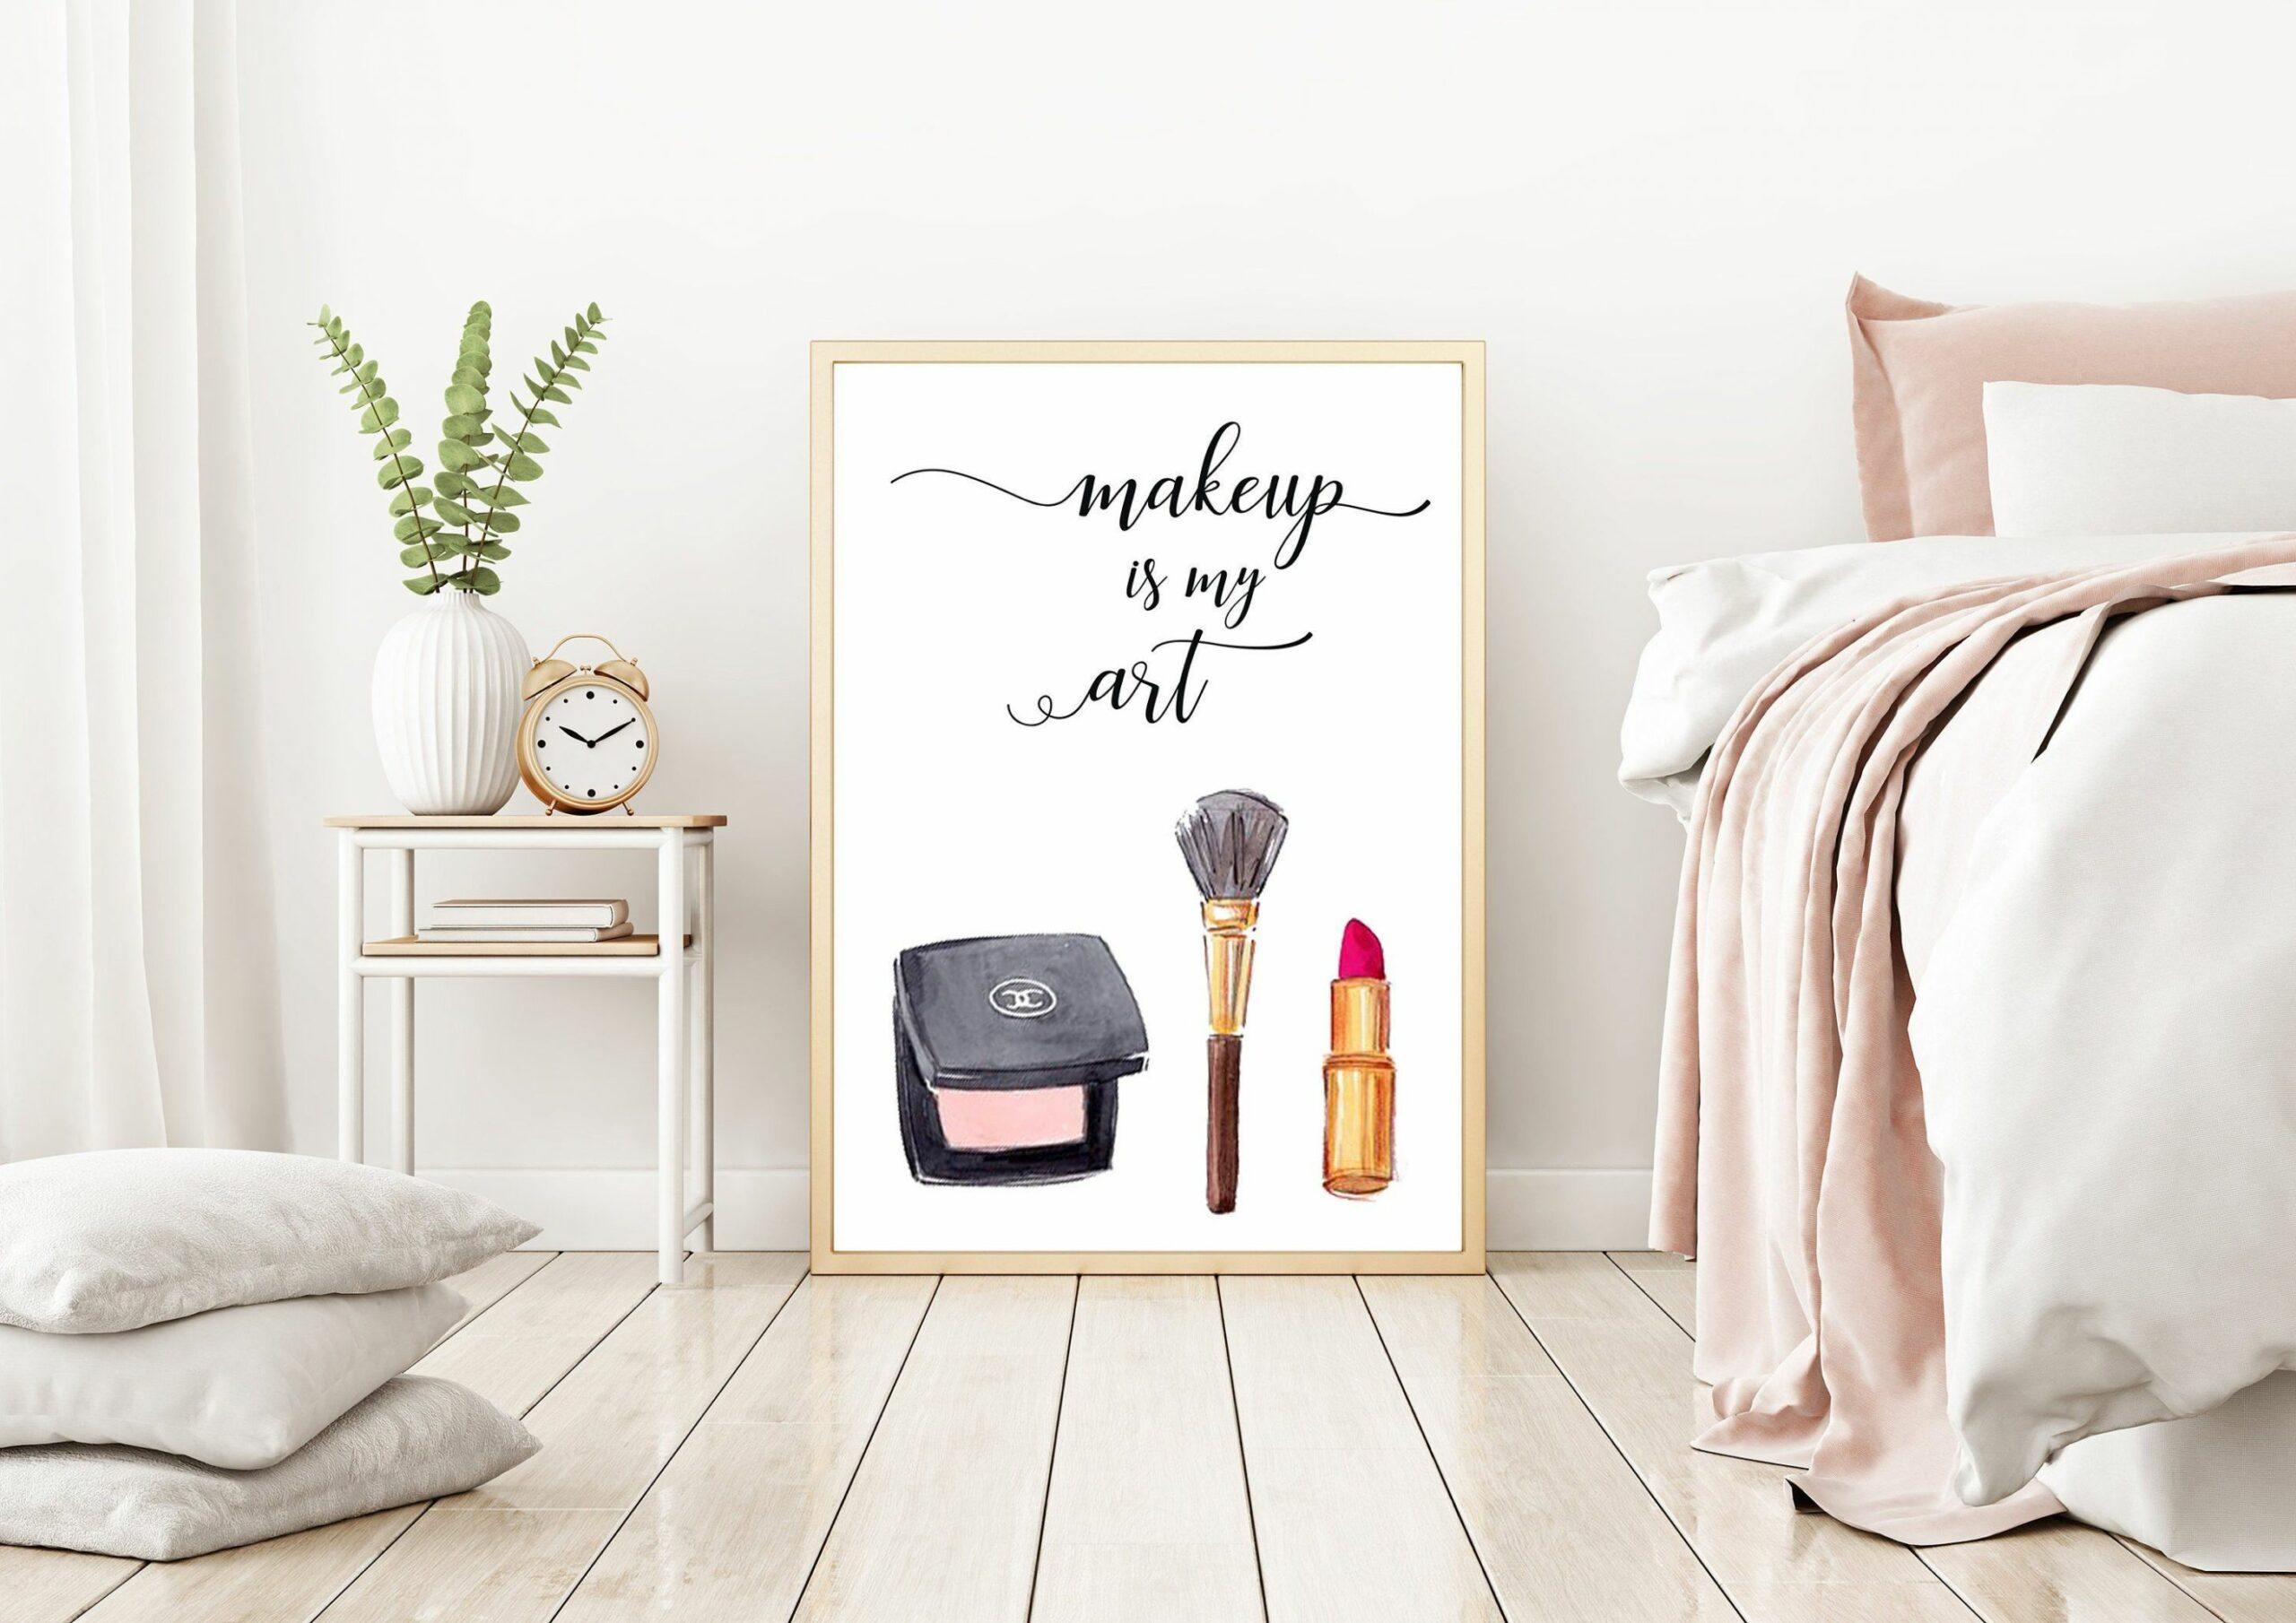 Makeup Vanity, Salon Decor, Makeup Room Print | Bedroom prints ...